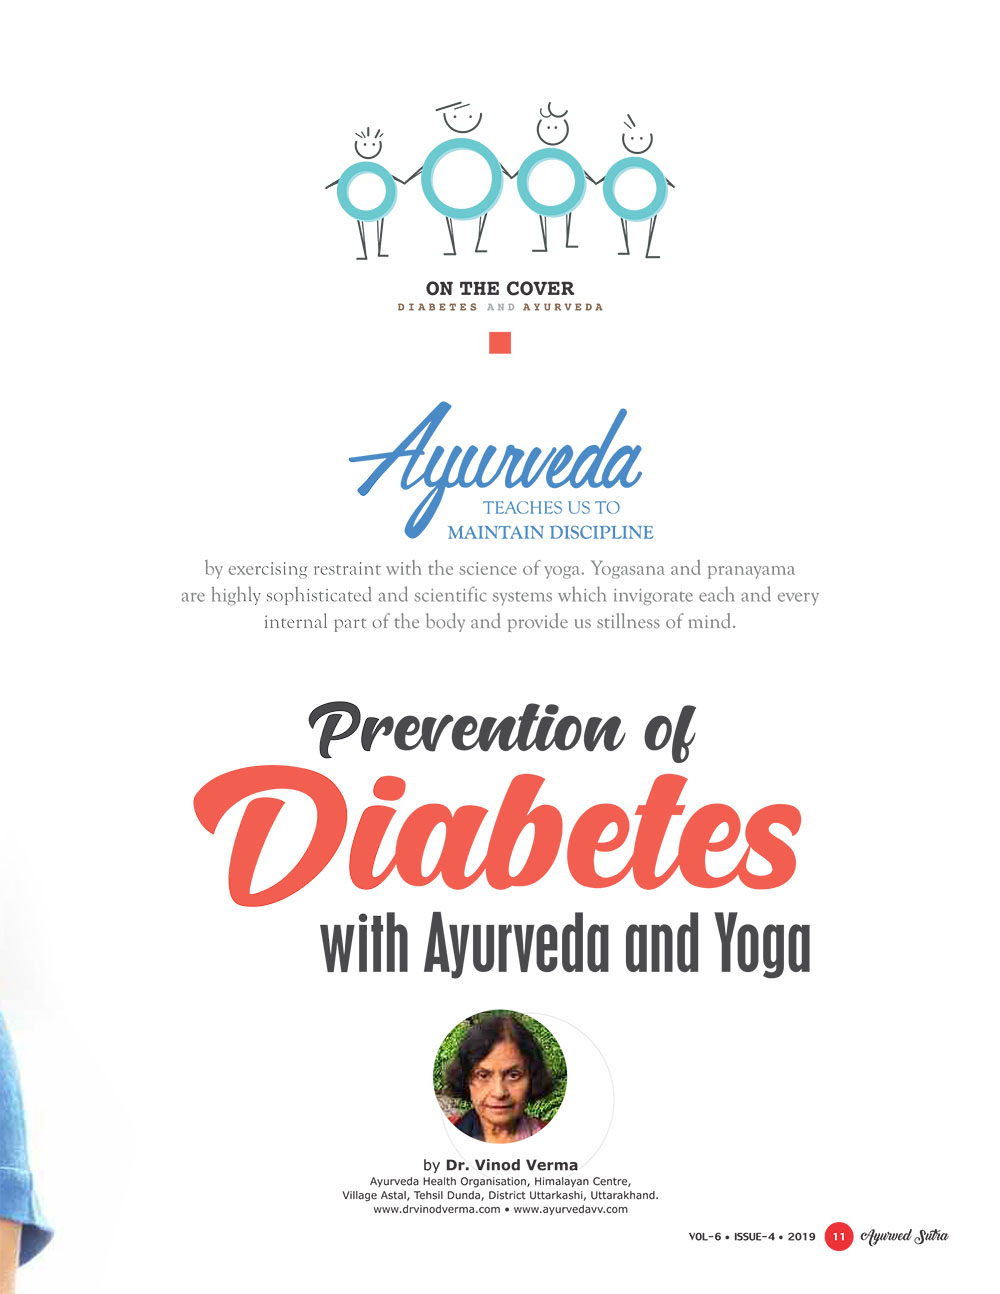 Ayurvedsutra Vol 06 issue 04 13 - Prevention of Diabetes with Ayurveda and Yoga